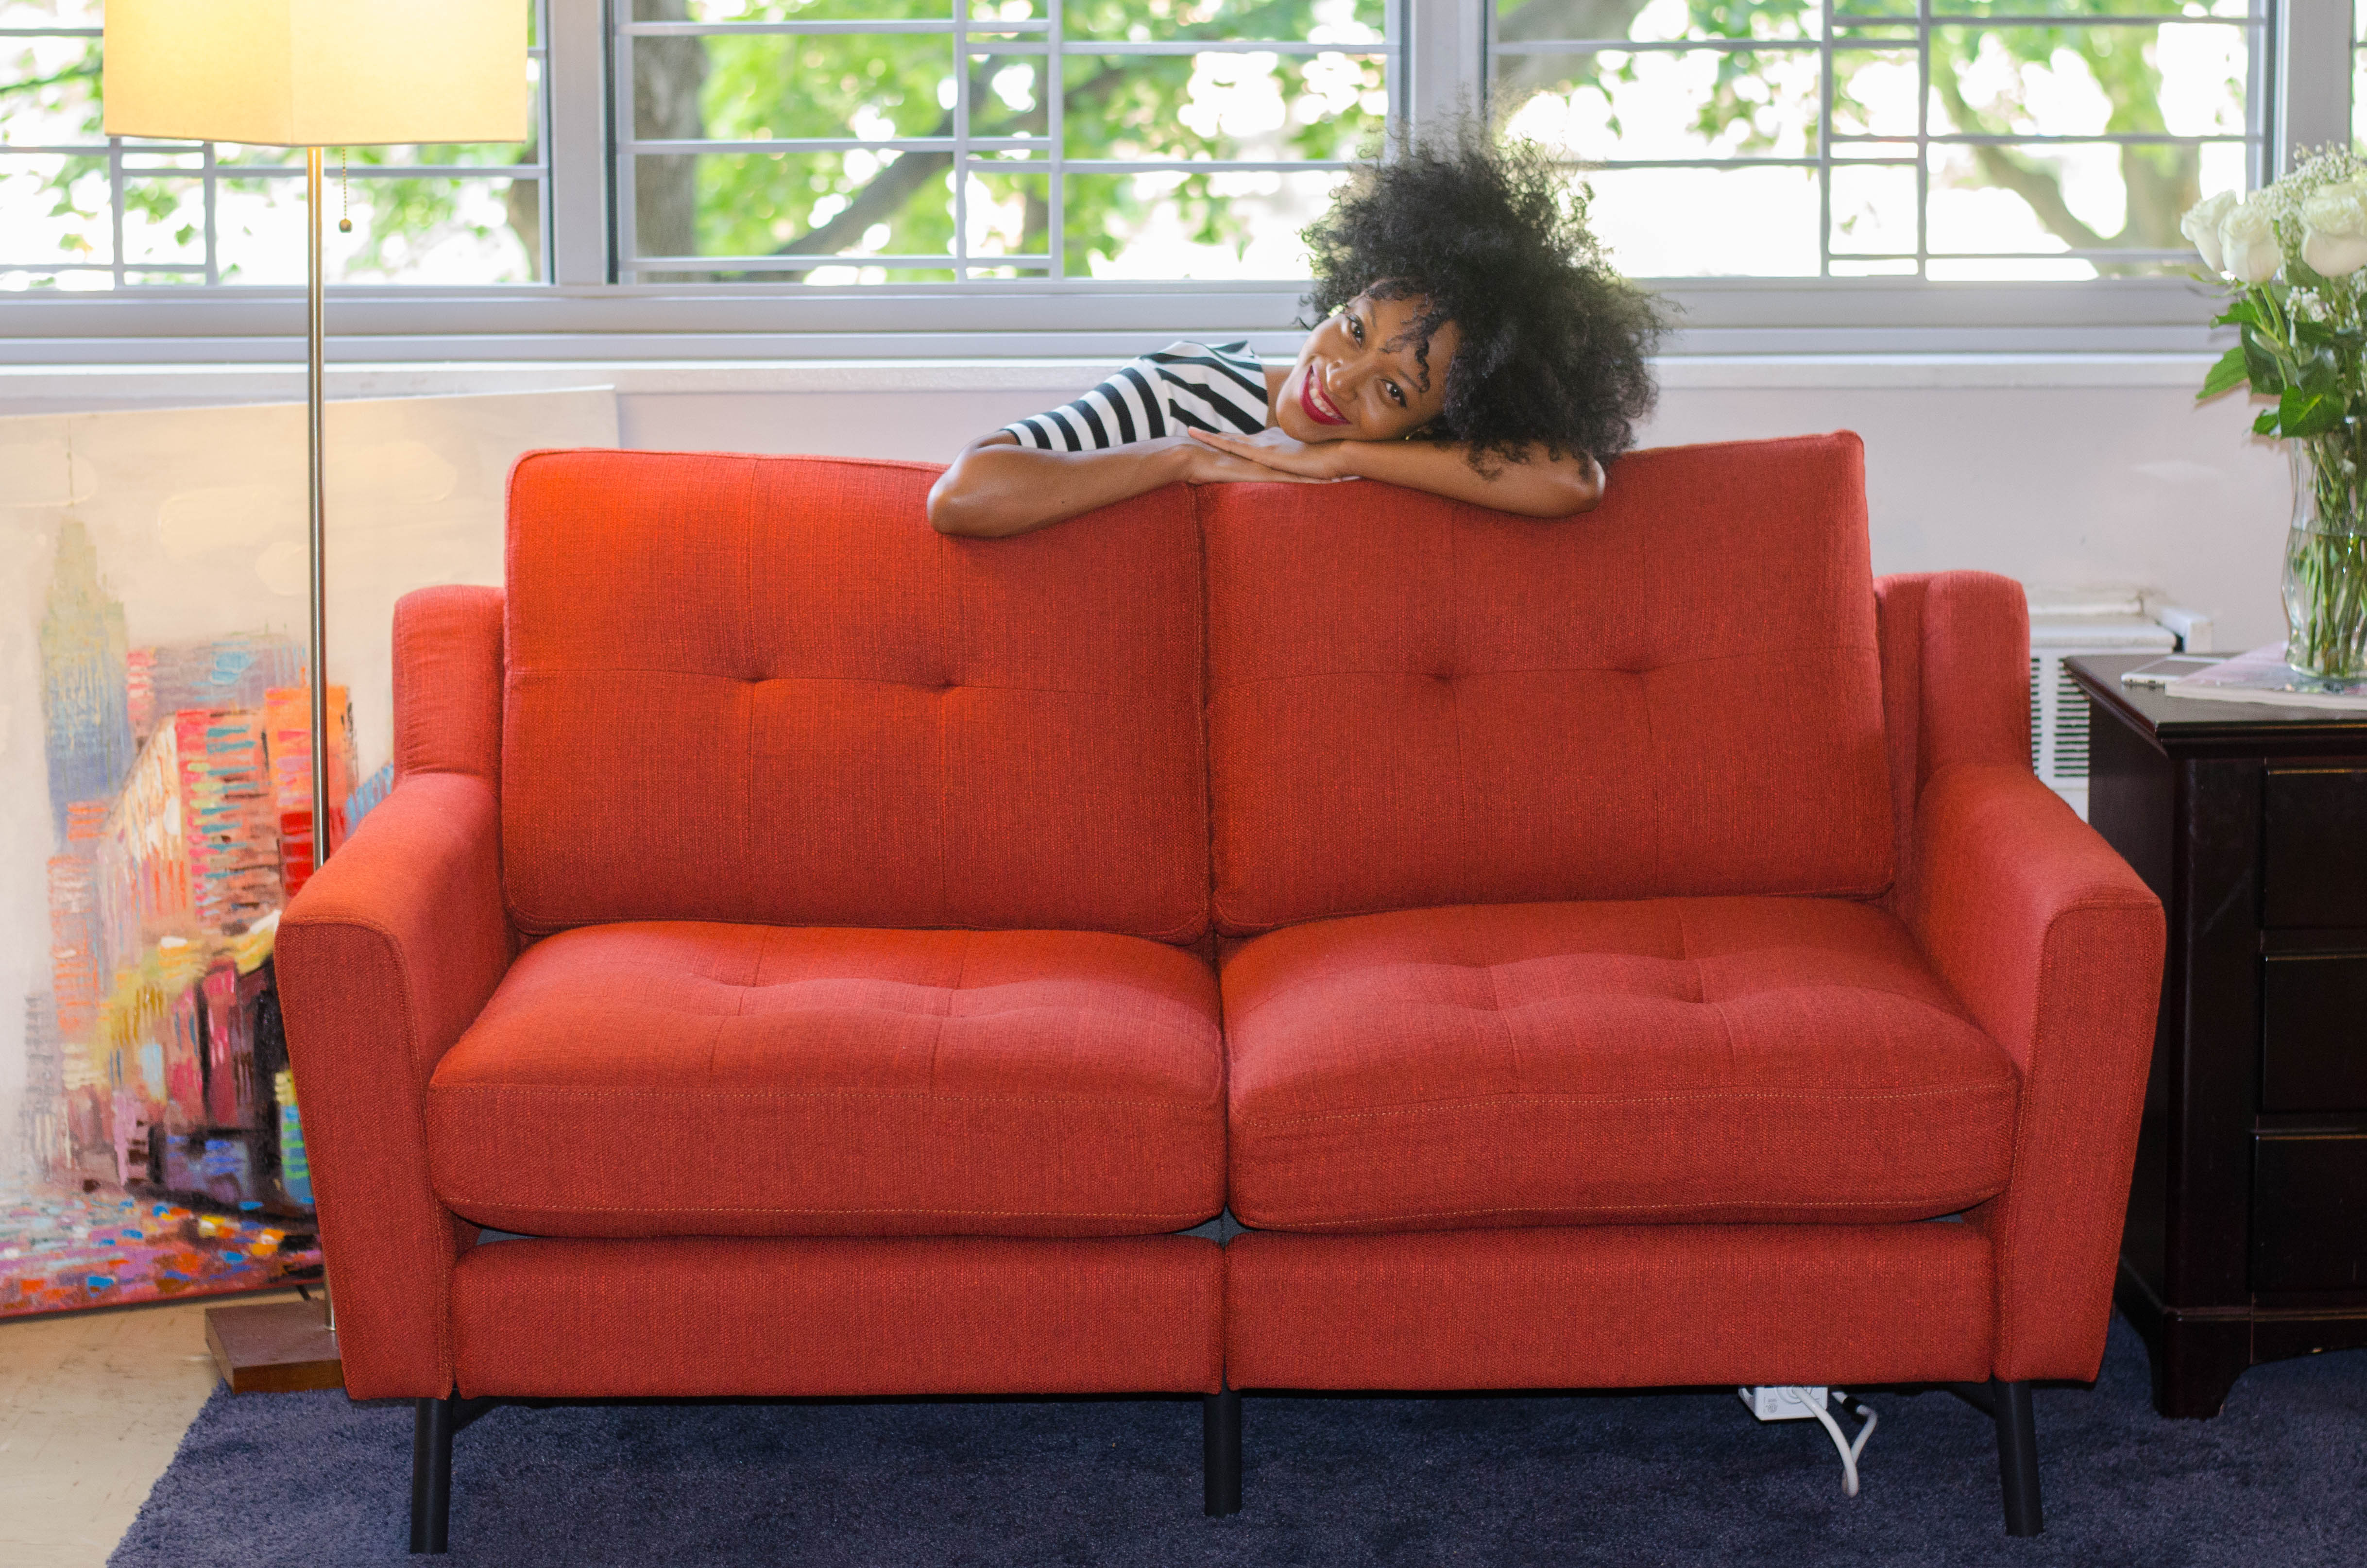 Couches 4 Meet Burrow The Modular Sofa Brand That S Stylish And Affordable